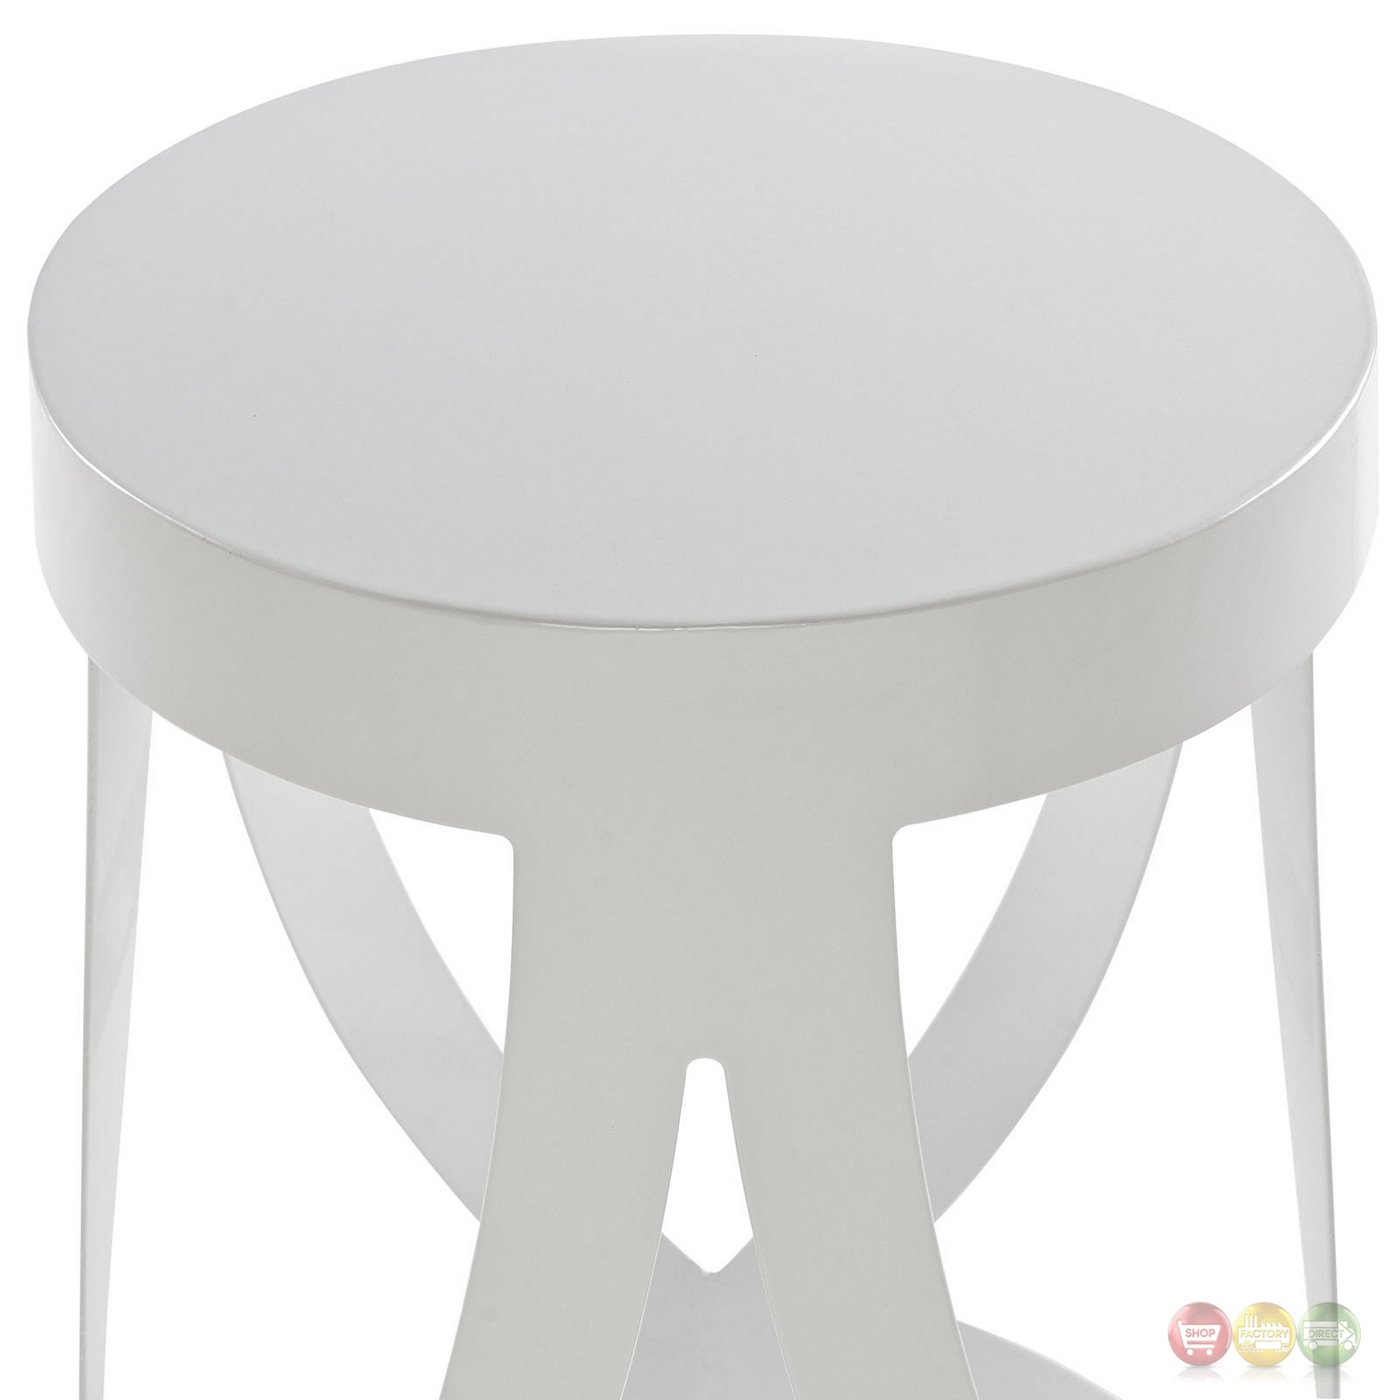 Set Of 4 Ribbon Contemporary Bar Stool In Coated Steel  : set of 4 ribbon contemporary bar stool in coated steel finish white 7 from shopfactorydirect.com size 1400 x 1400 jpeg 340kB